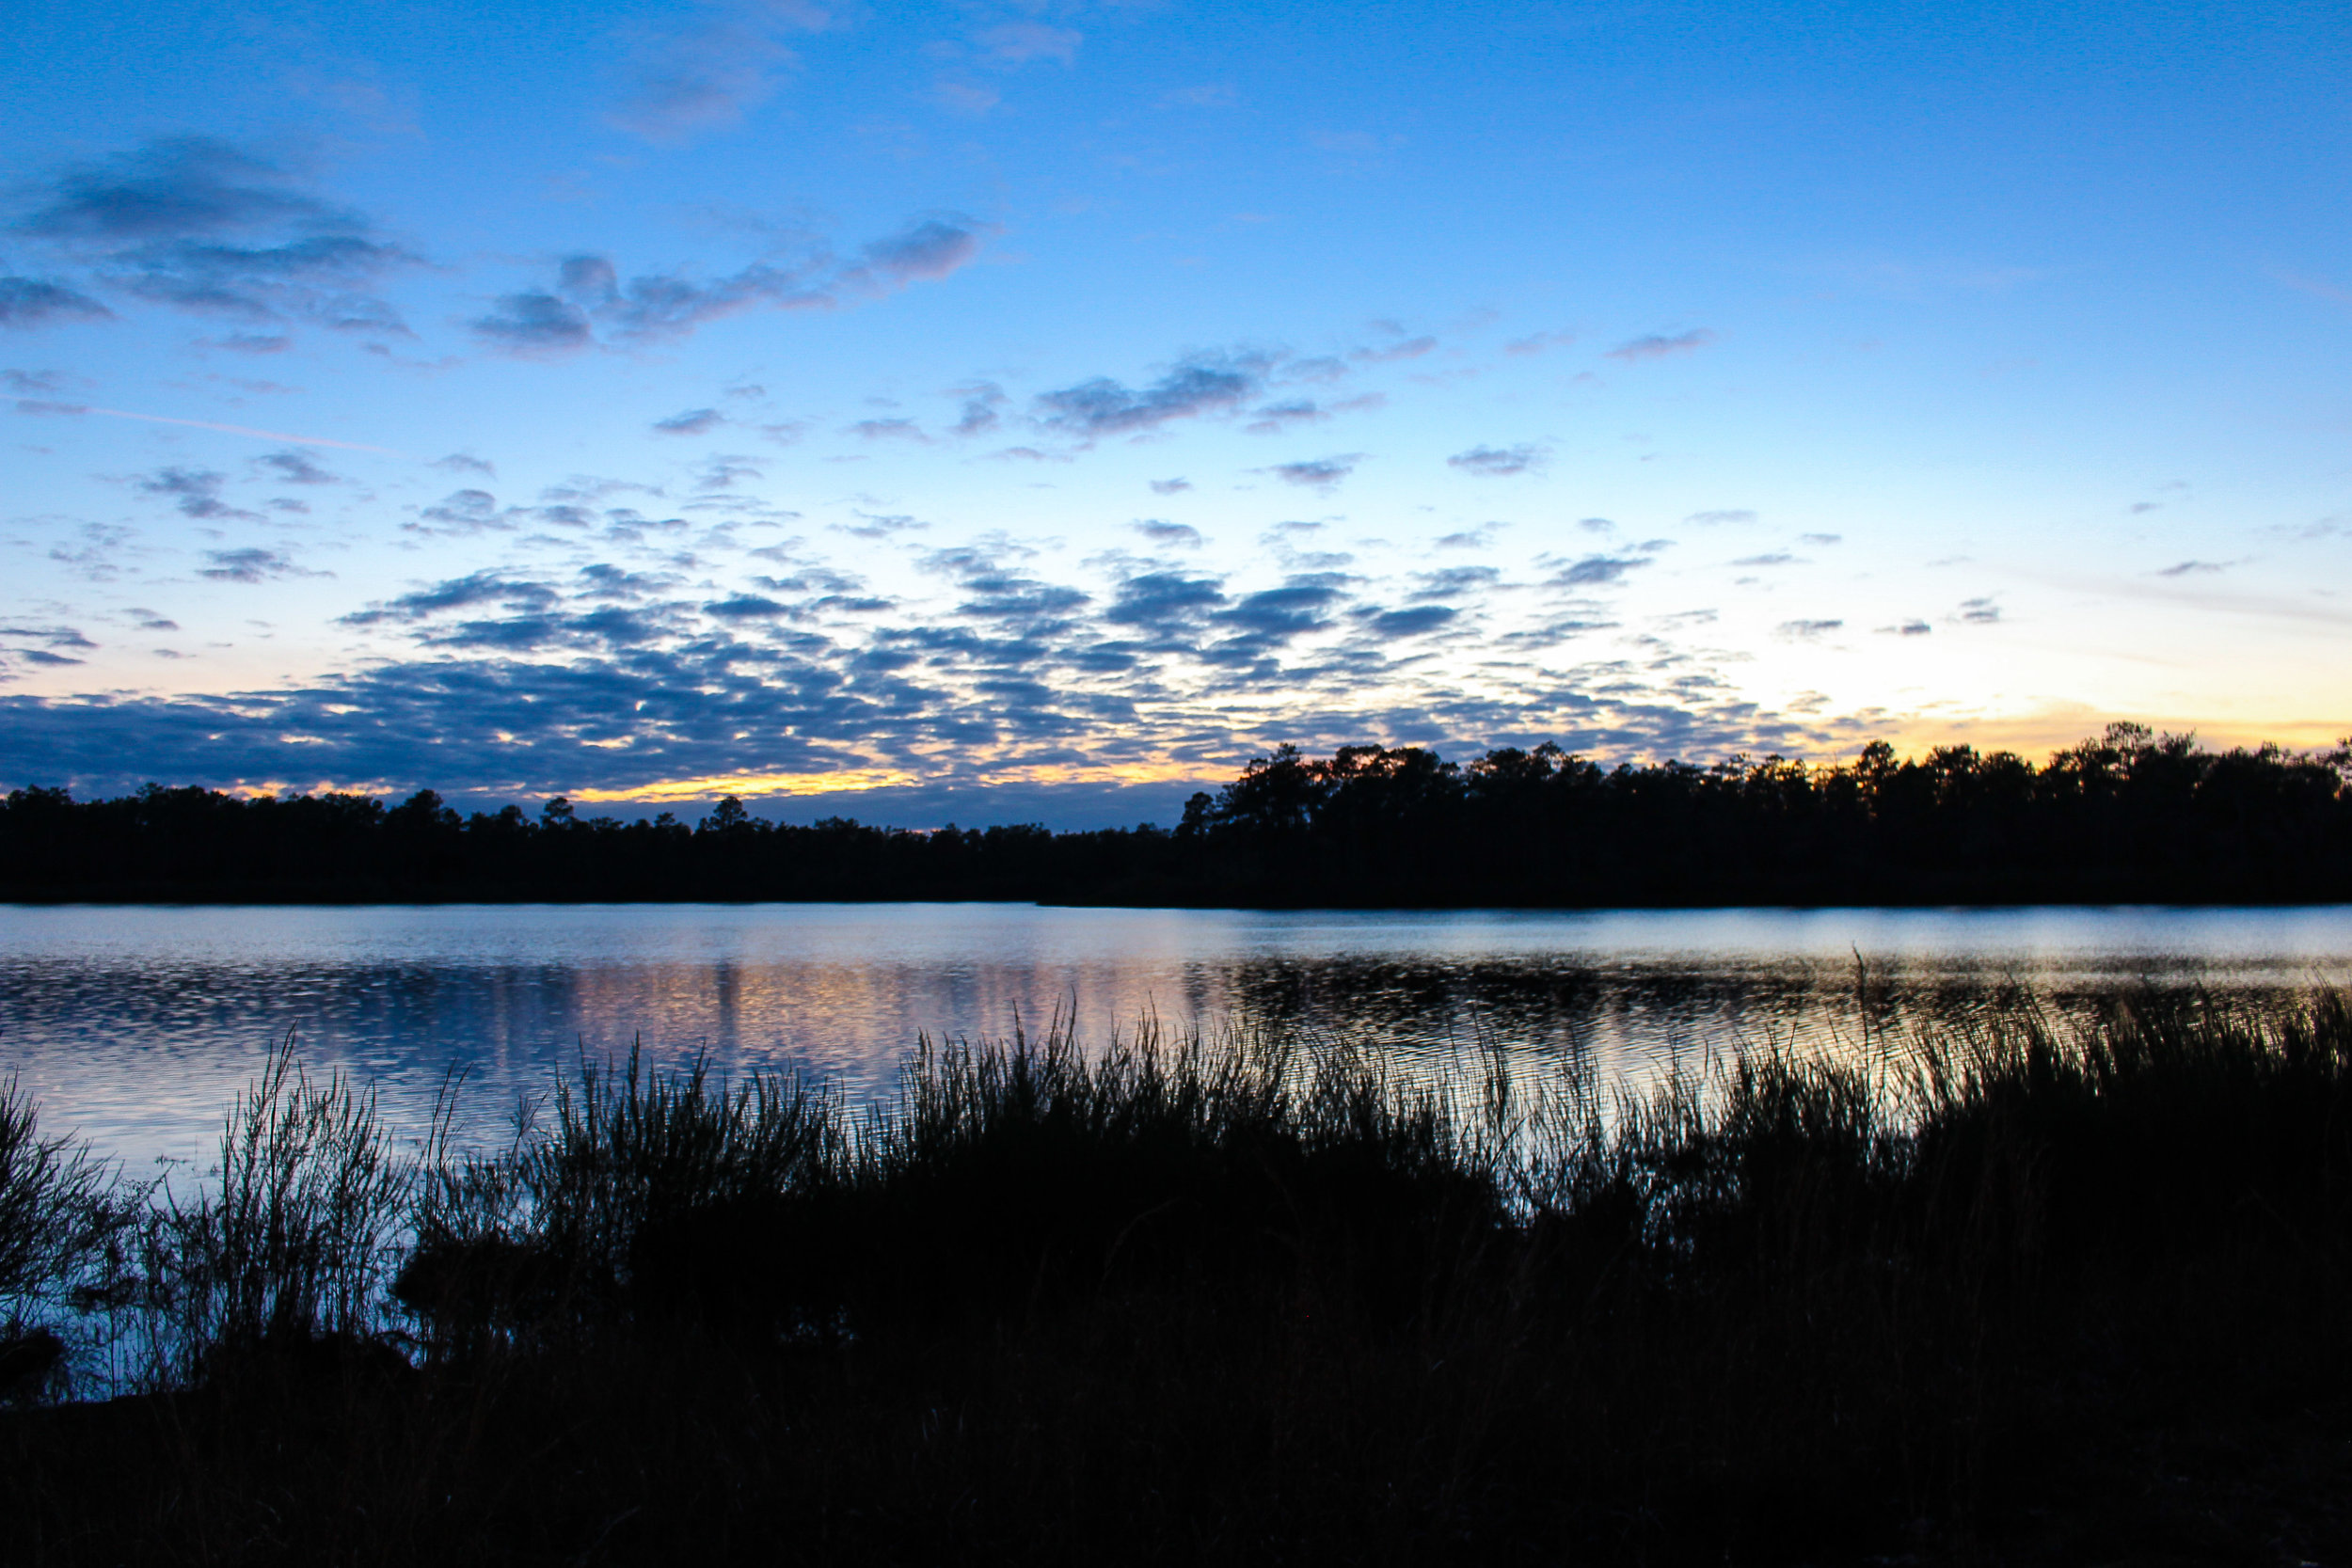 Dusk at Camel Lake Campground in Apalachicola National Forest, FL